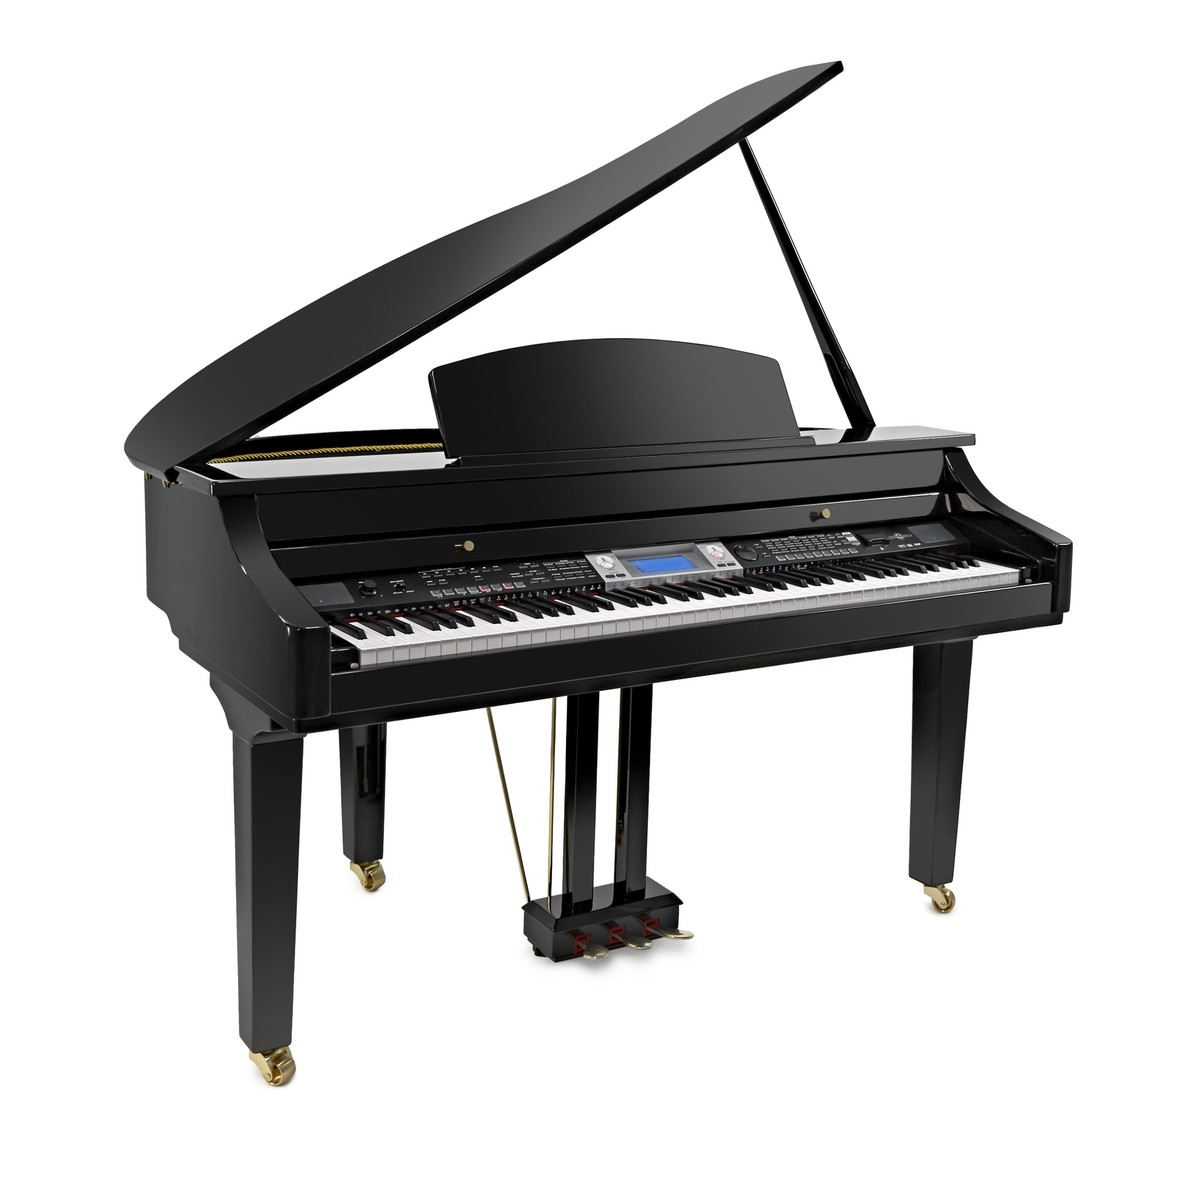 Gdp 300 Digital Grand Piano By Gear4music At Gear4music